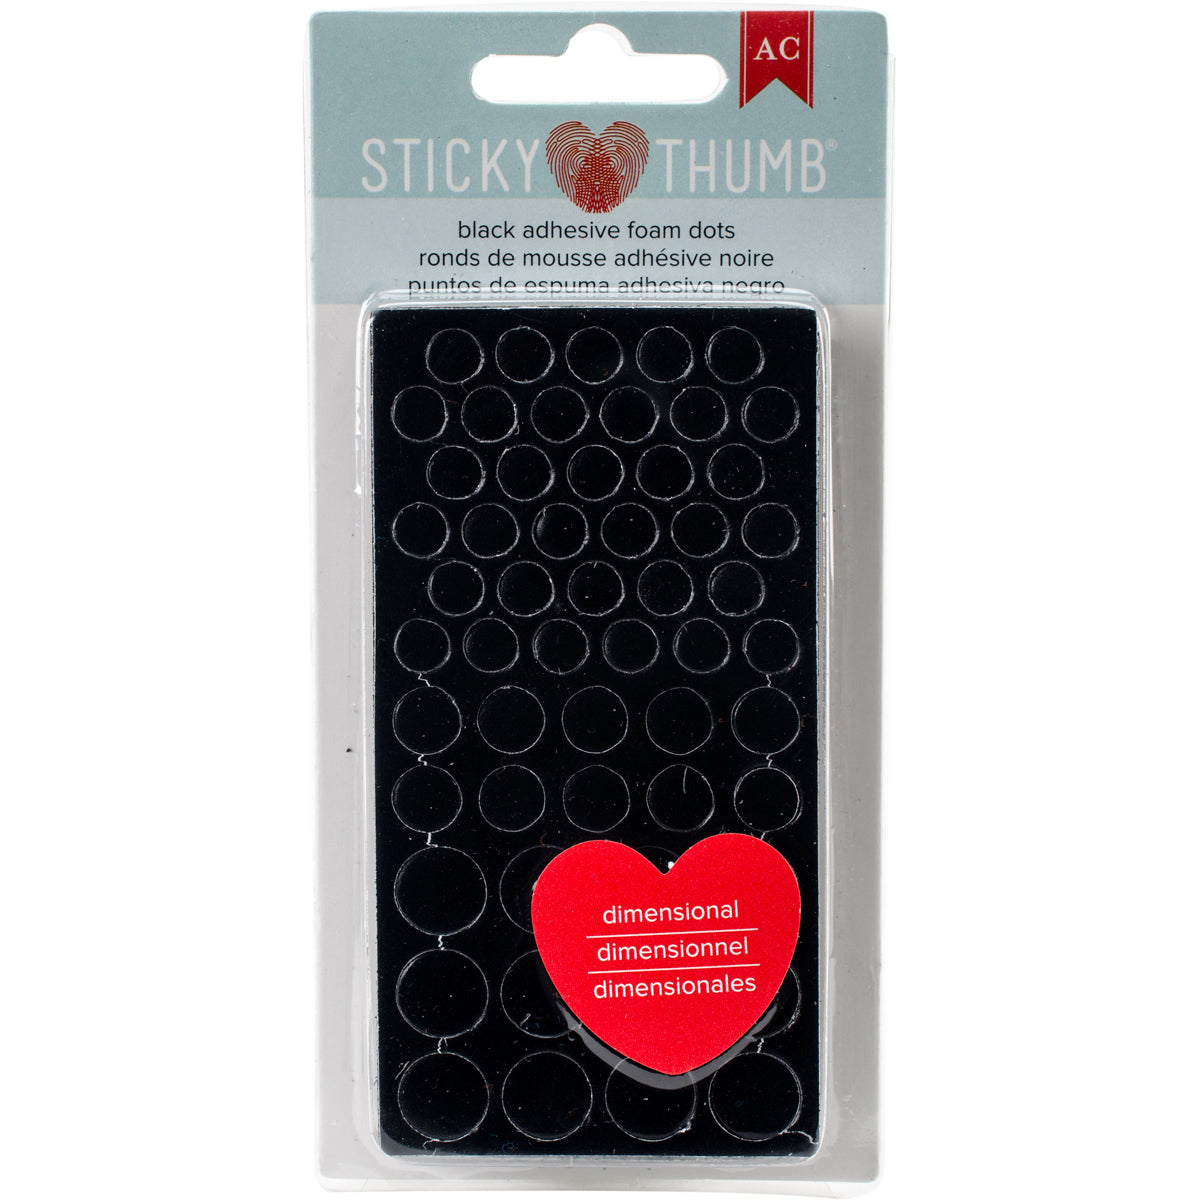 290951 Sticky Thumb Dimensional Adhesive Foam 275/Pkg-Black Dots, Assorted Sizes